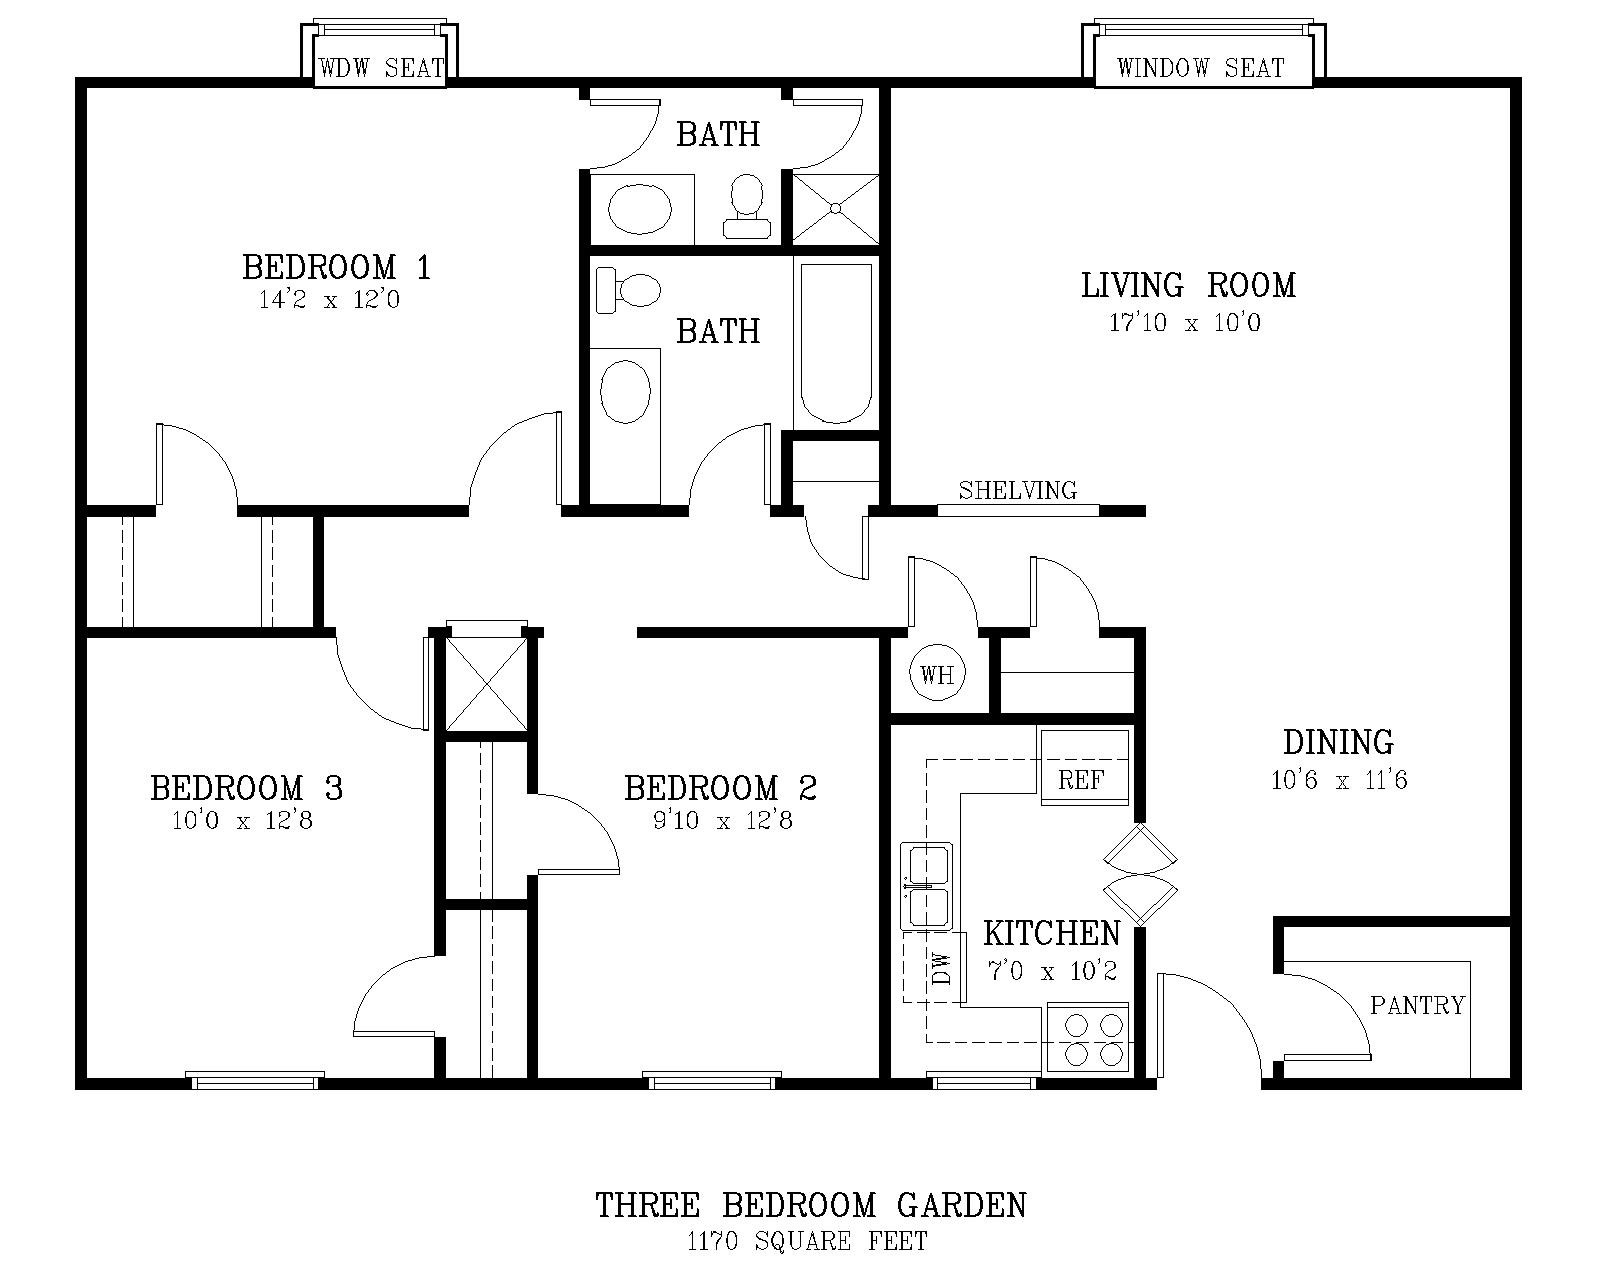 Best ideas about Dining Room Dimensions . Save or Pin Standard Dining Room Size Now.